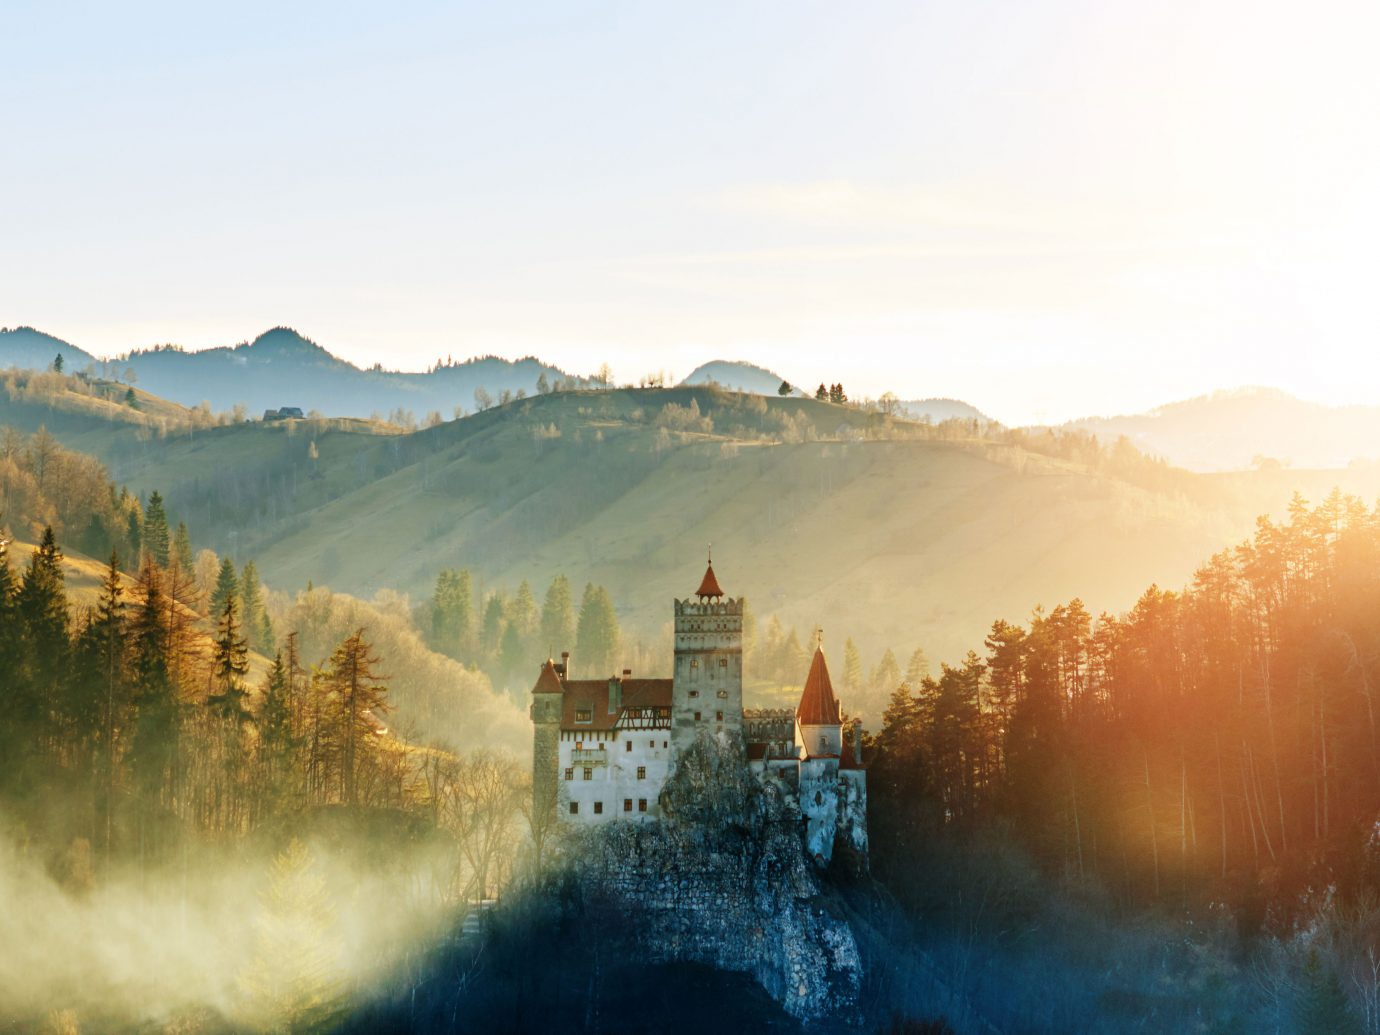 Bran Castle on a hilltop during a misty sunrise